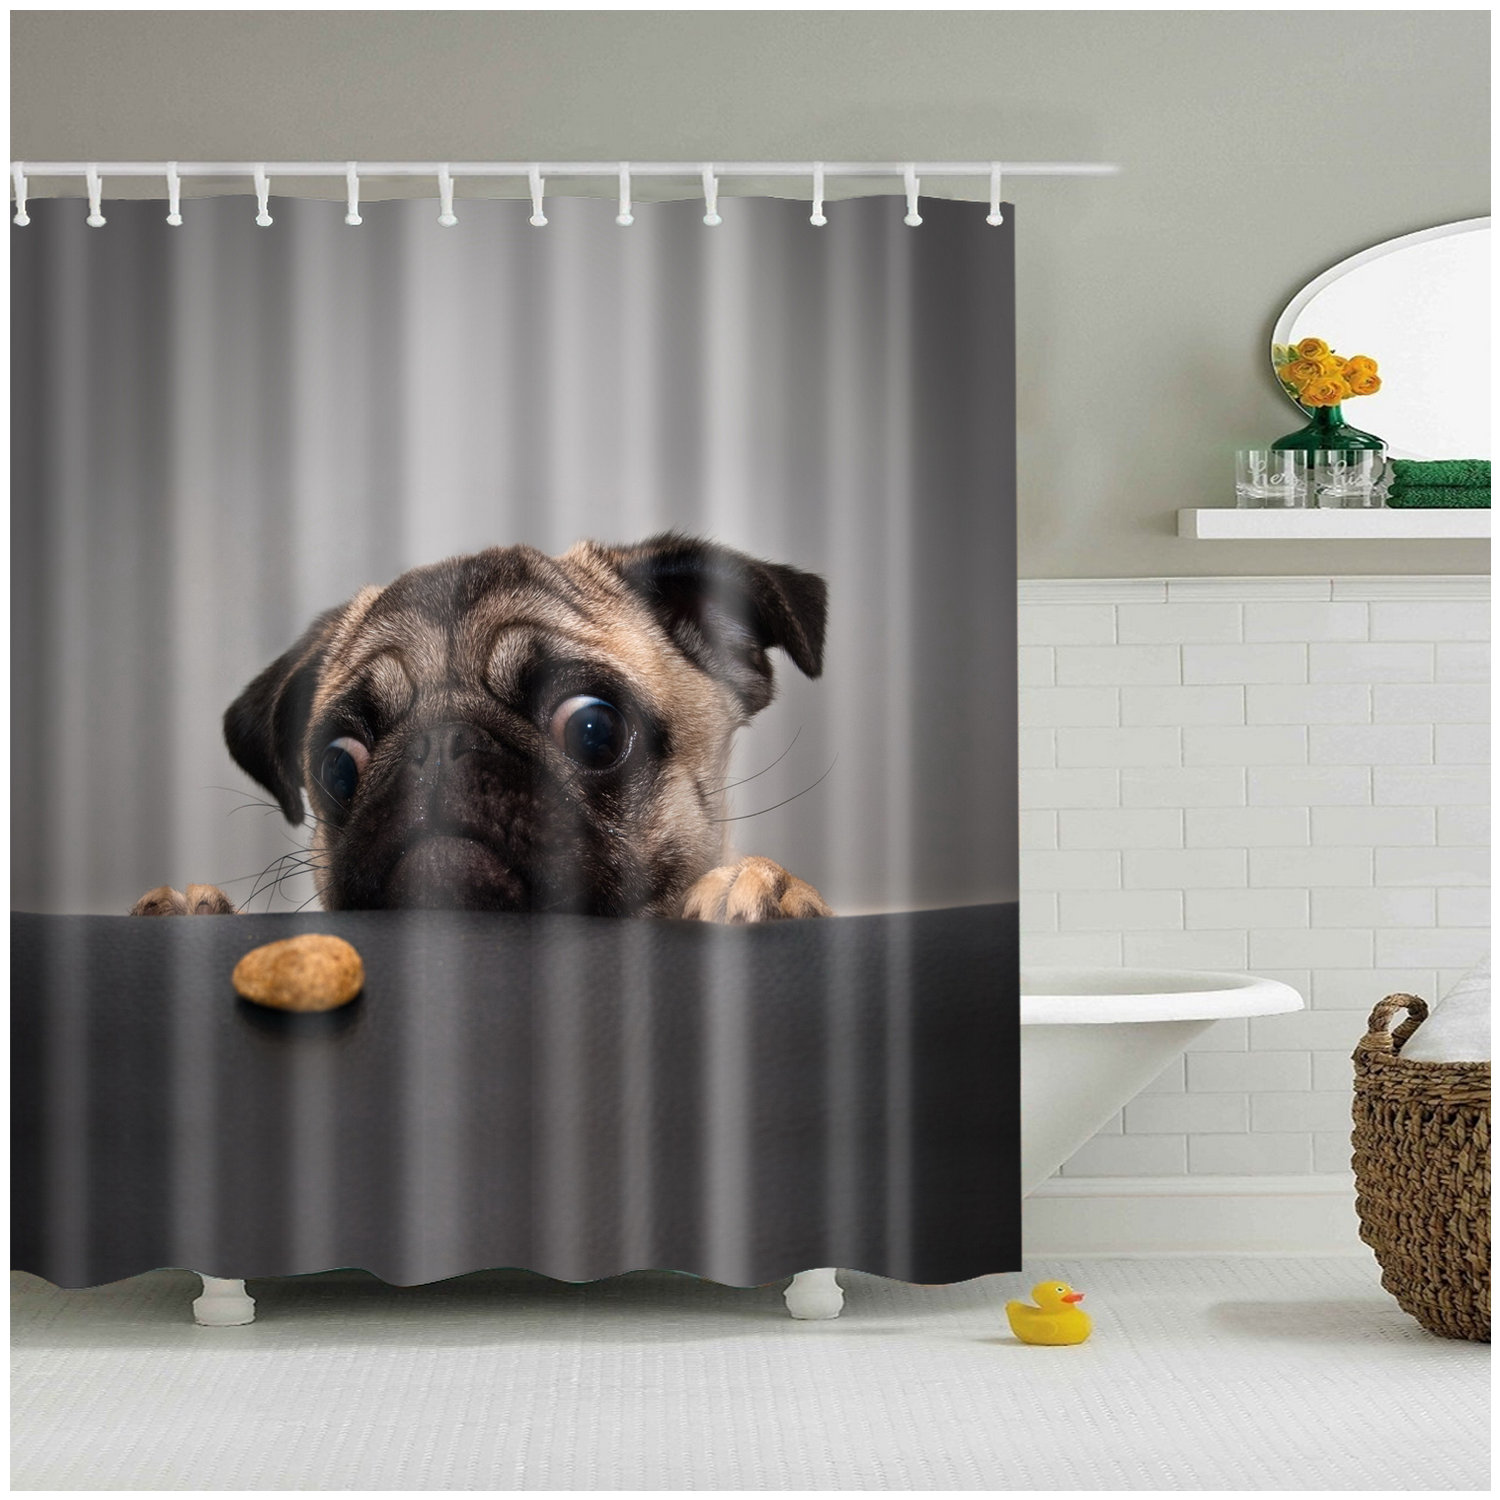 . Details about Shower Curtain Art Bathroom Decor Animals Cute Pug Dog 3D  Curtains  12 pcs hooks